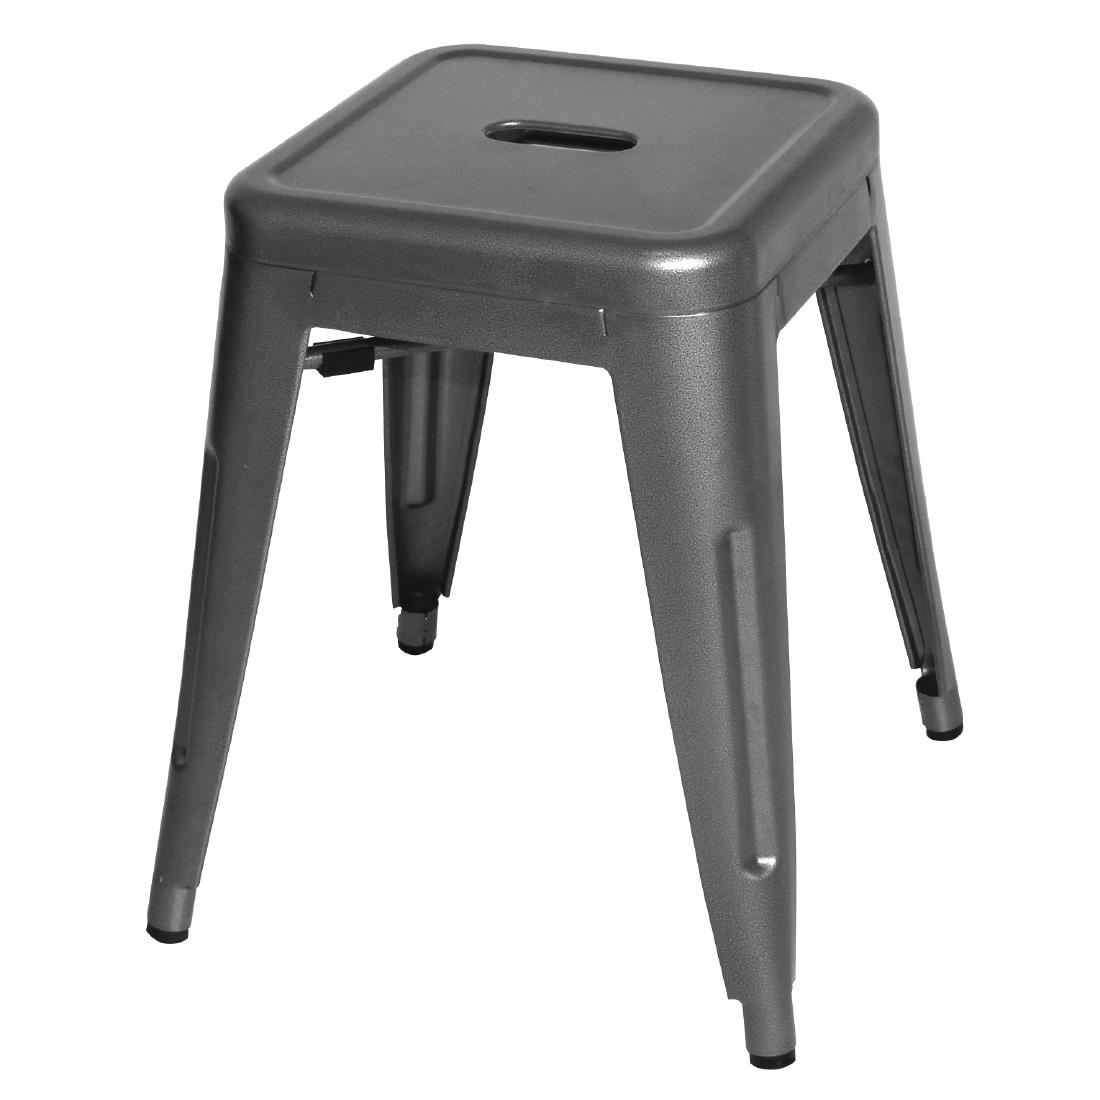 Swell Bolero Bistro Steel Low Stool Gun Metal Pack Of 4 Gmtry Best Dining Table And Chair Ideas Images Gmtryco